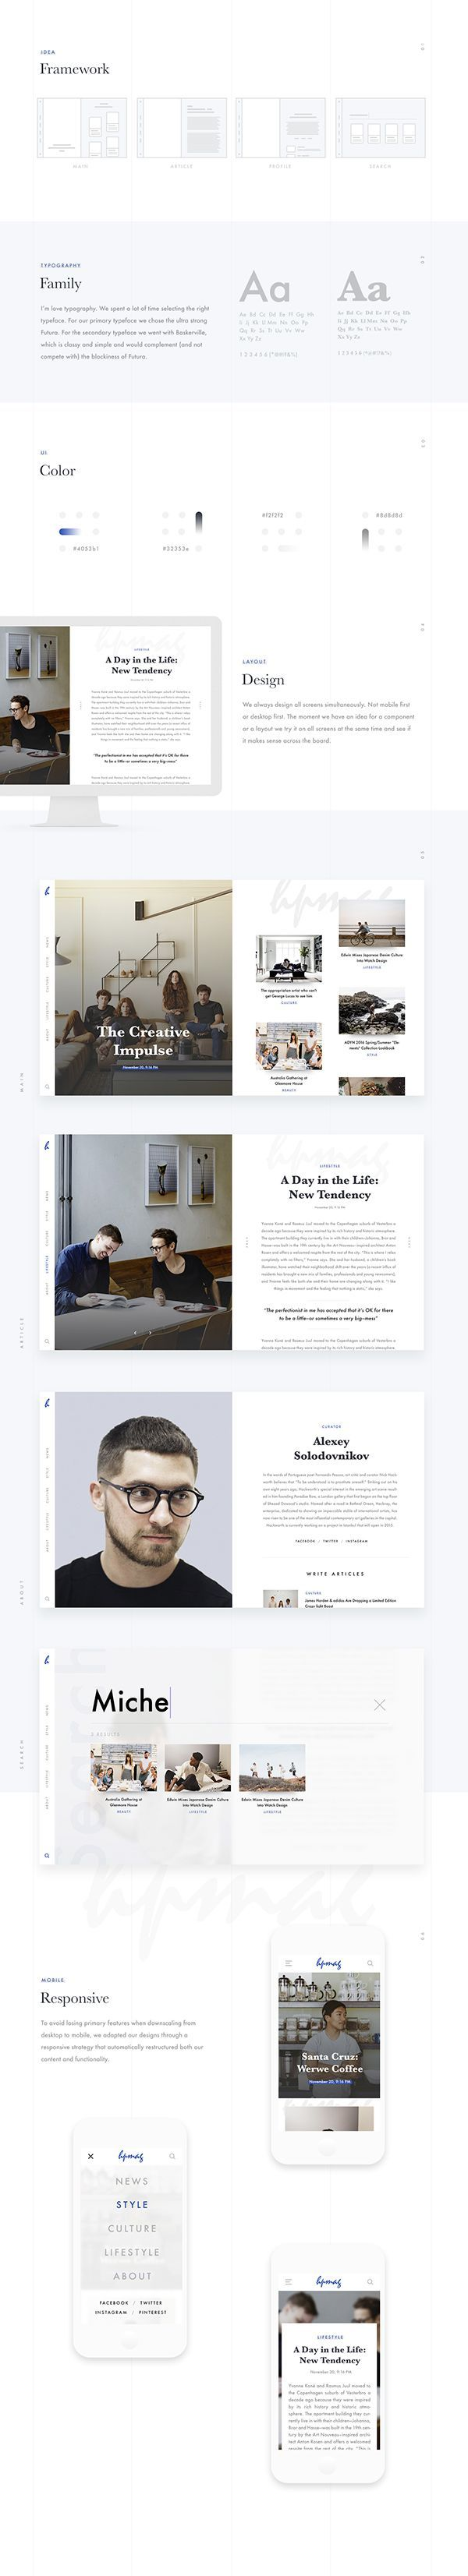 Hpmag redefined the concept of an online magazine by bringing together elements from apps, traditional printed editorial publications & web design.. The UX Blog podcast is also available on iTunes.